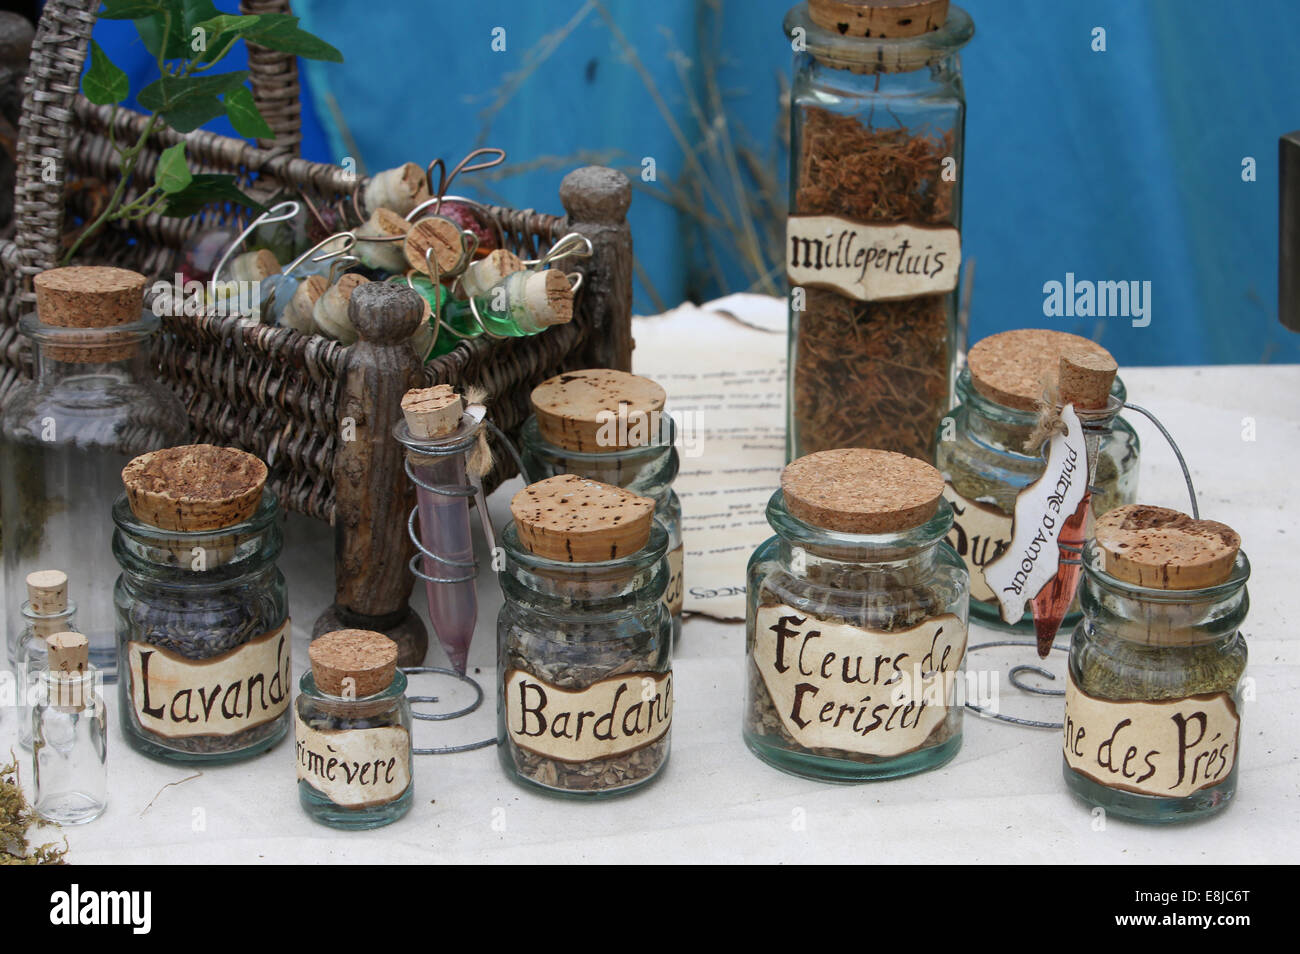 Trade in herbs. Herbalist production. - Stock Image